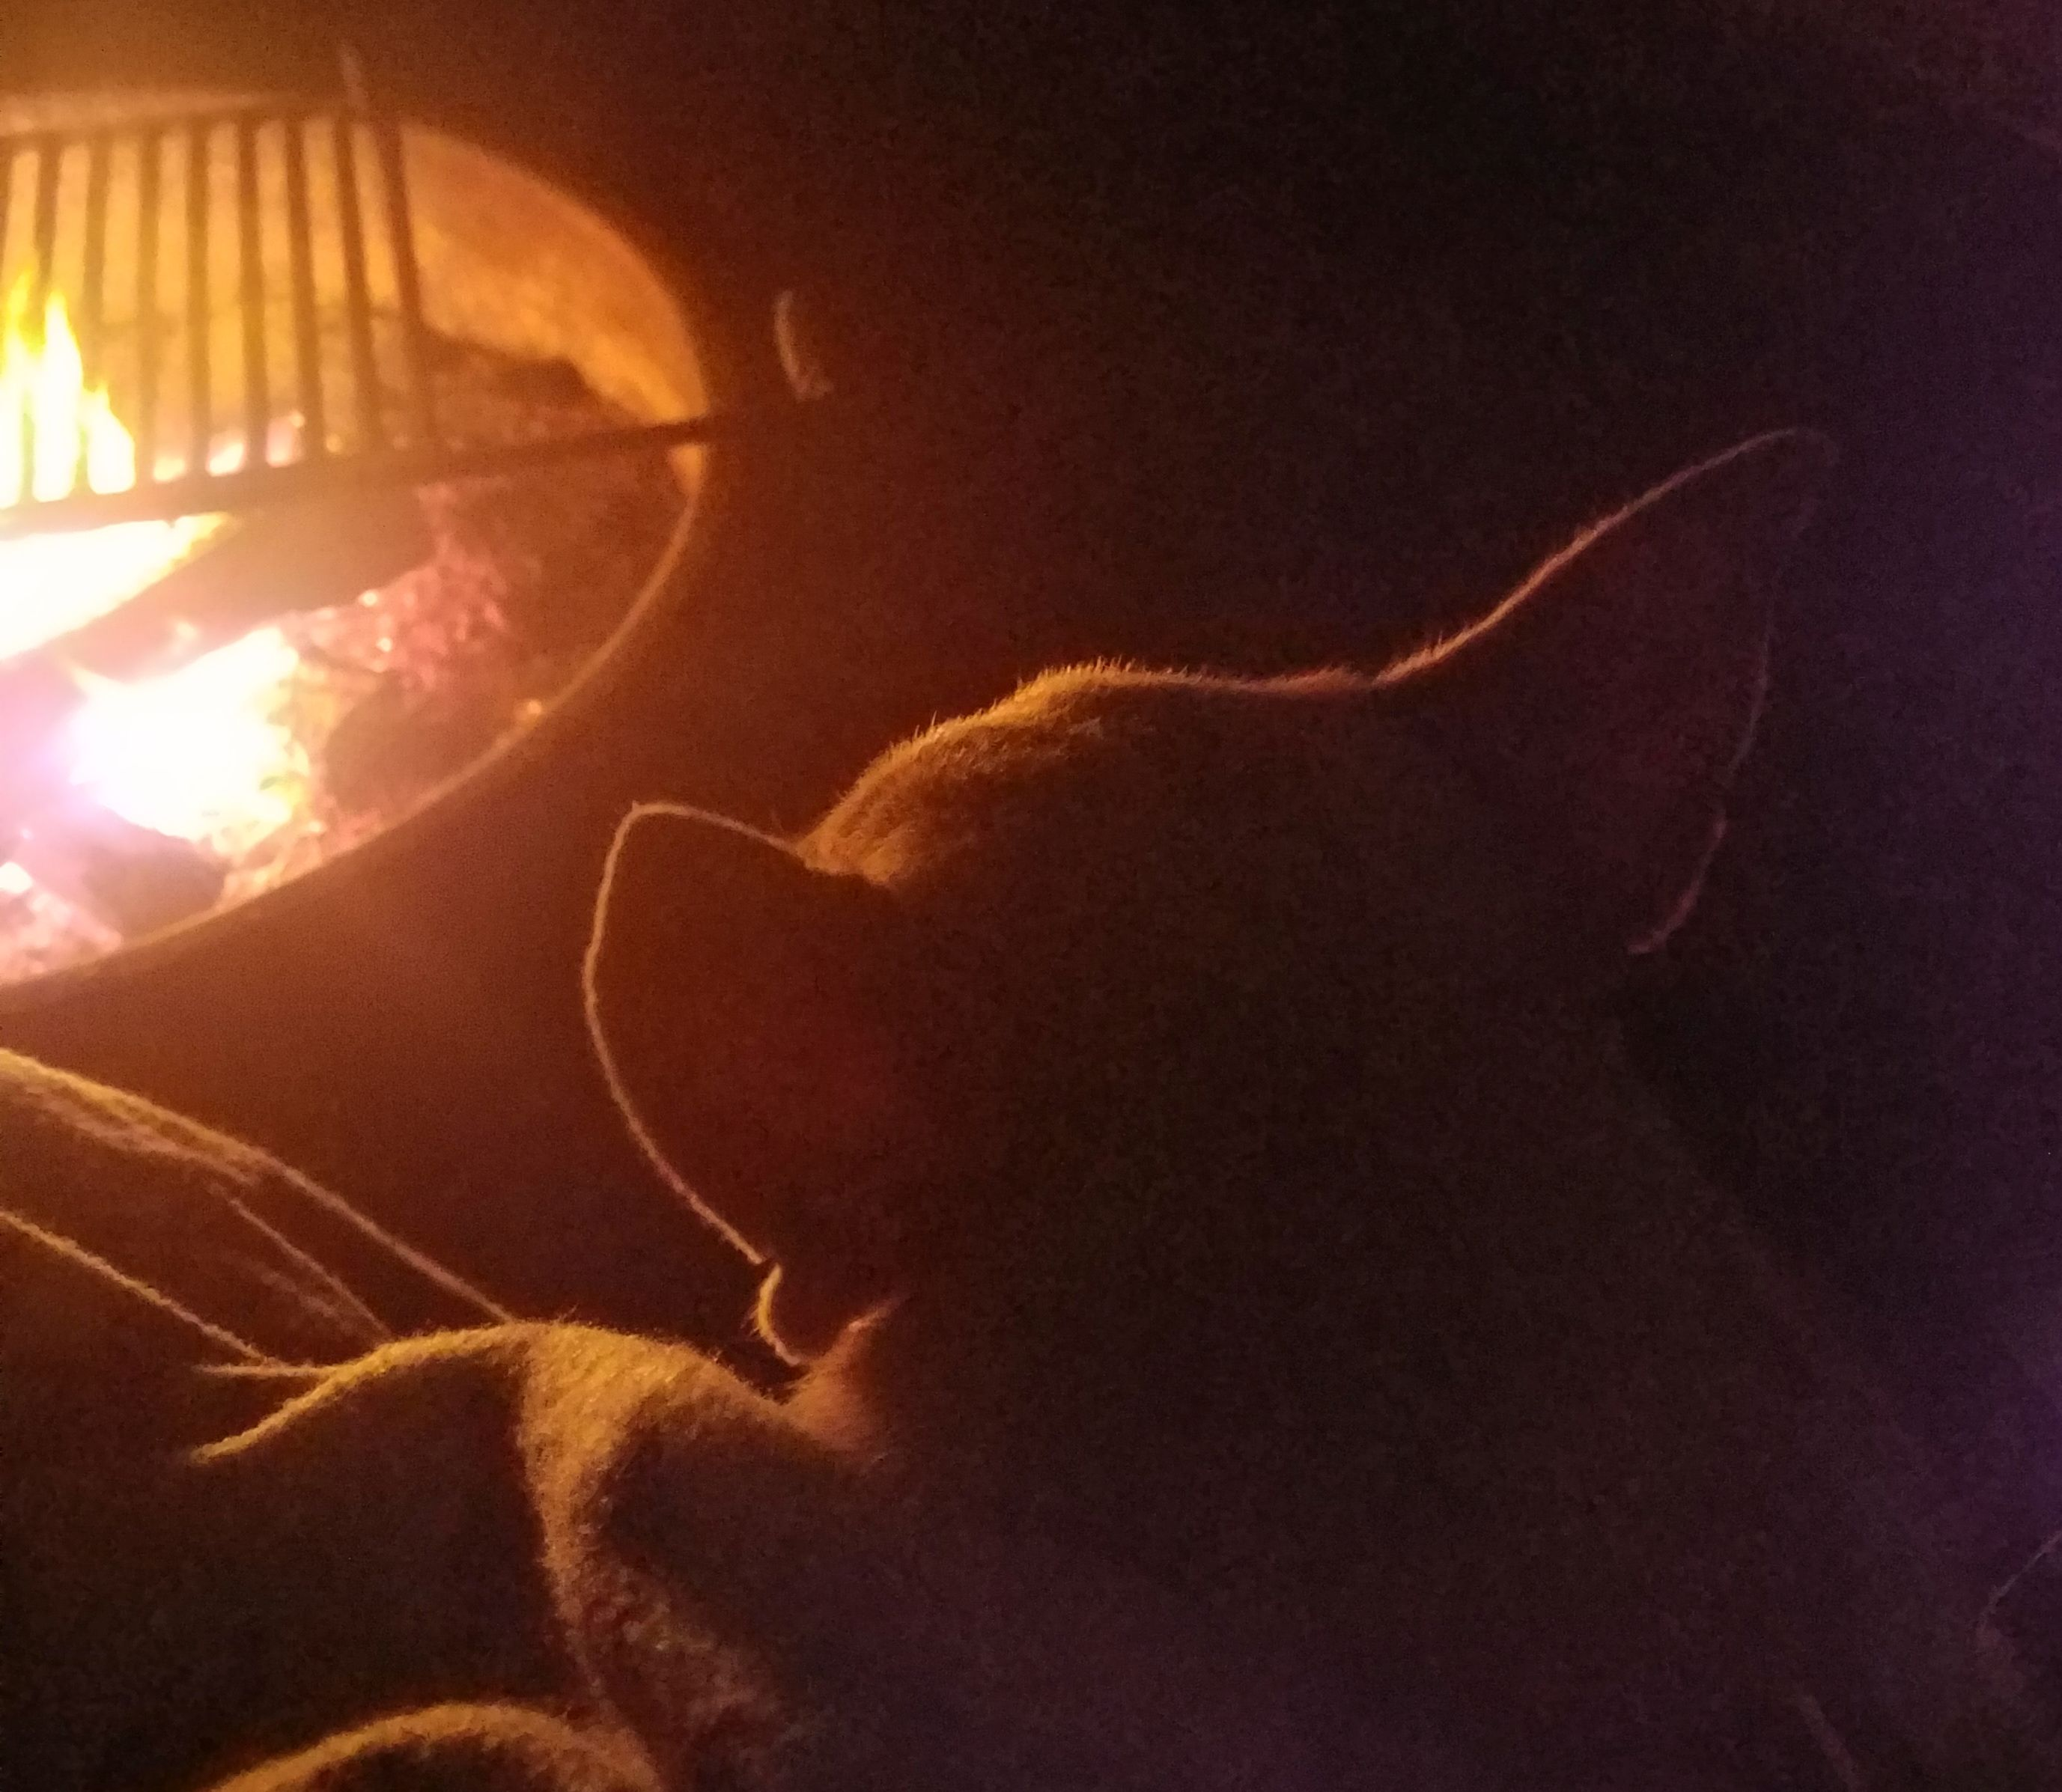 Peanut snuggling with mama by the campfire